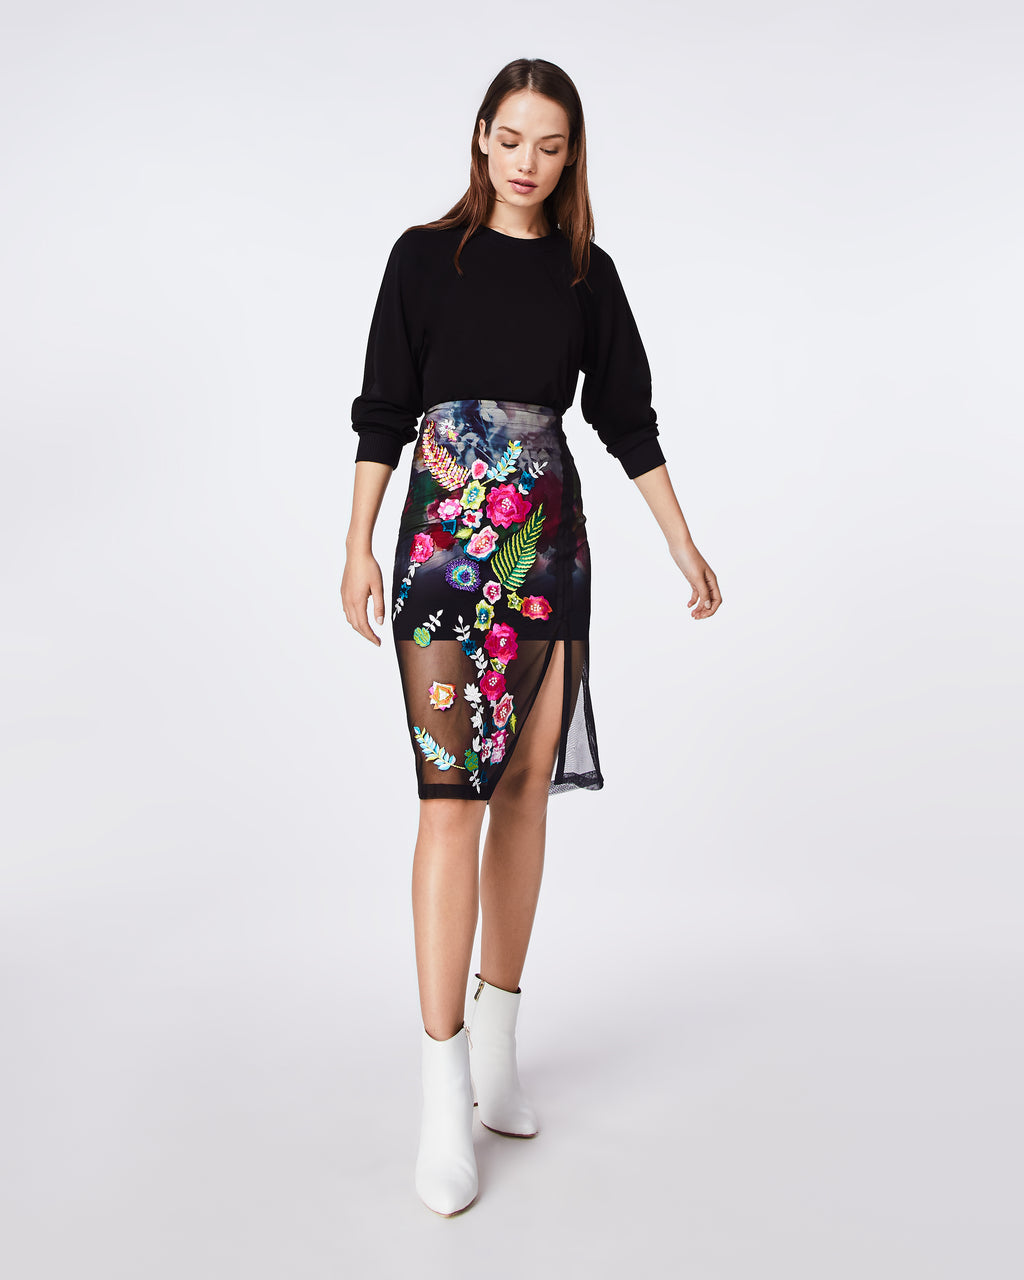 BM10208 - FAINT FLOWERS EMBROIDERY SKIRT - bottoms - skirts - This statement skirt will turn heads. The floral emboridery on the mesh overlay adds the perfect detail.